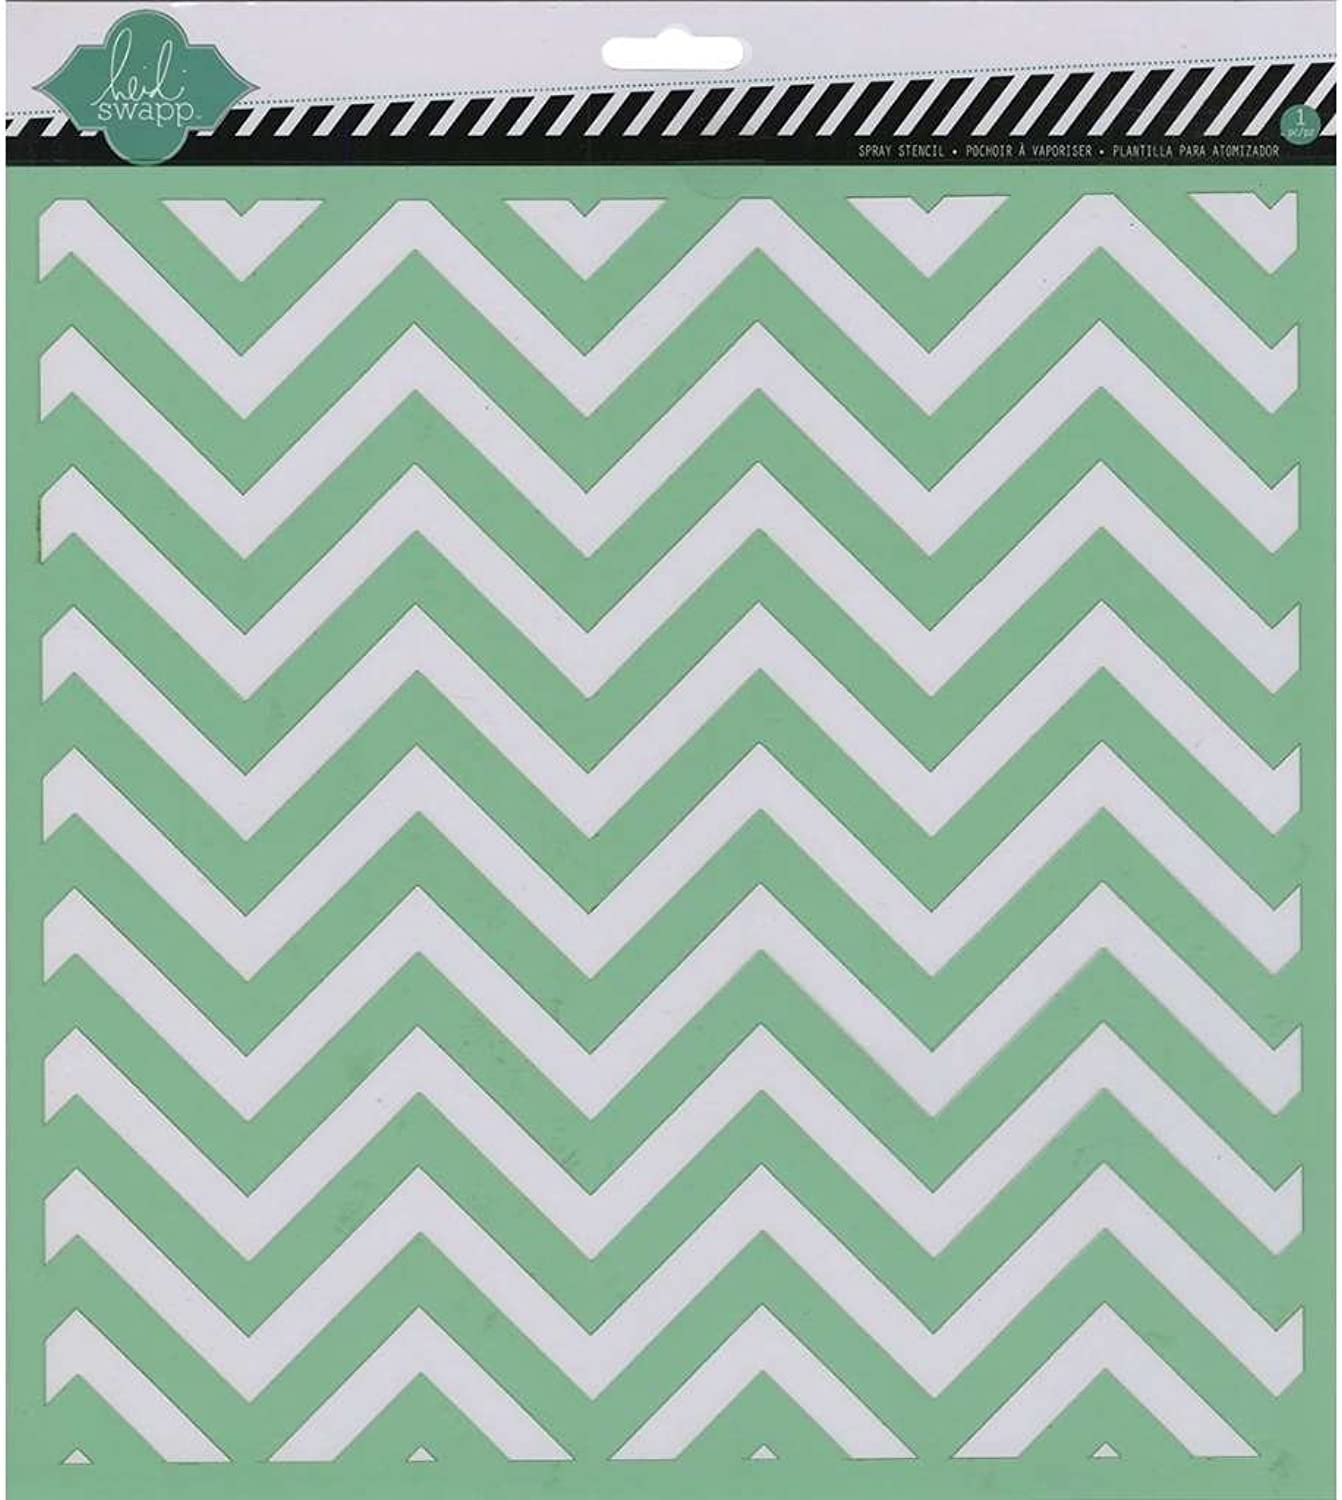 Heidi Swapp 12x12 Chevron Stencil for for for Arts and Crafting - 4-Pack B074PH6M1H     | Umweltfreundlich  b63acf